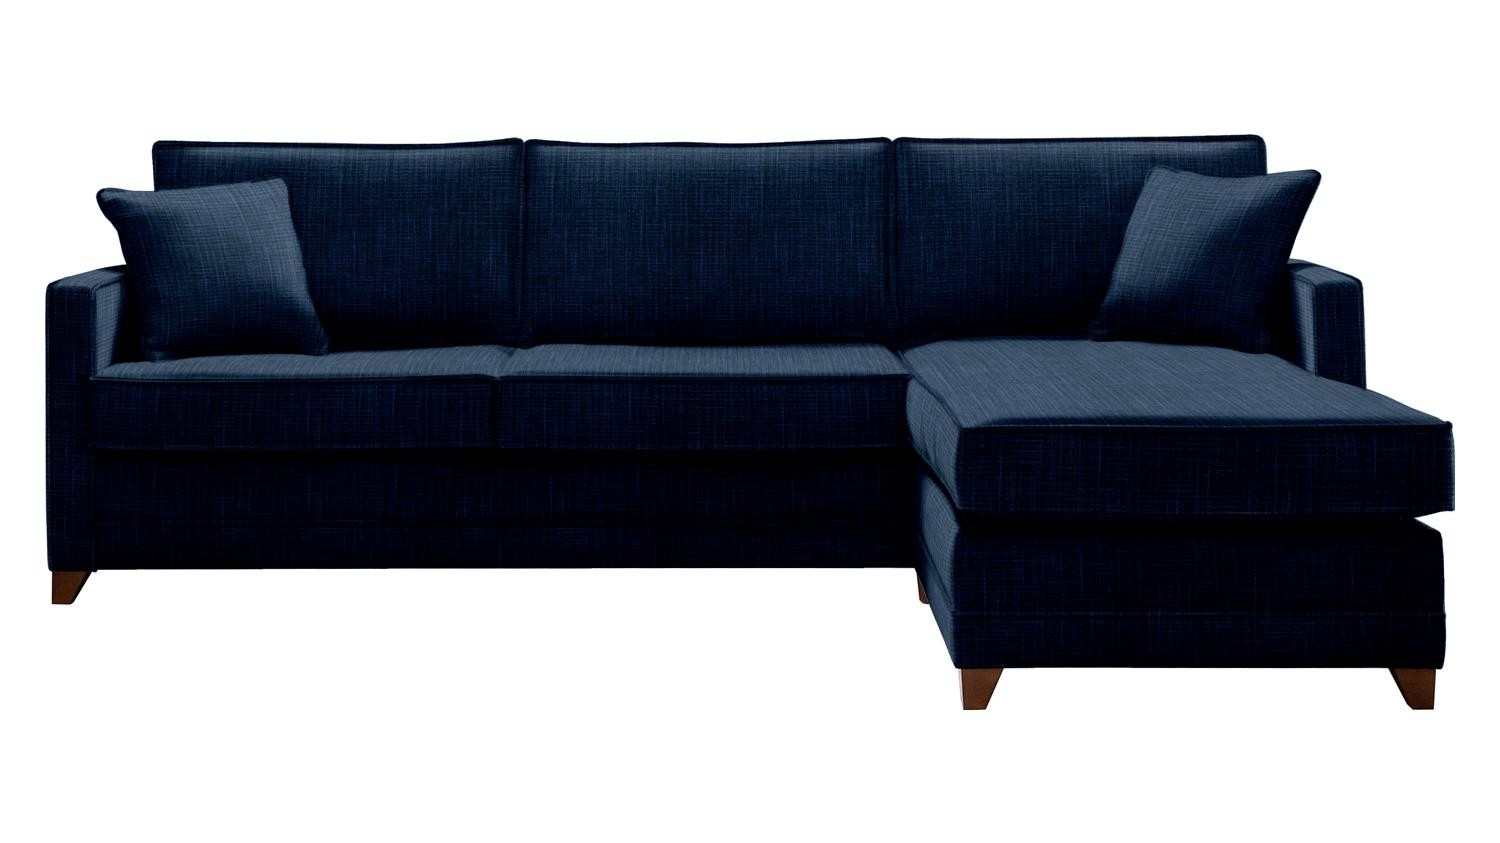 The Marston 5 Seater Right Chaise Storage Sofa Bed